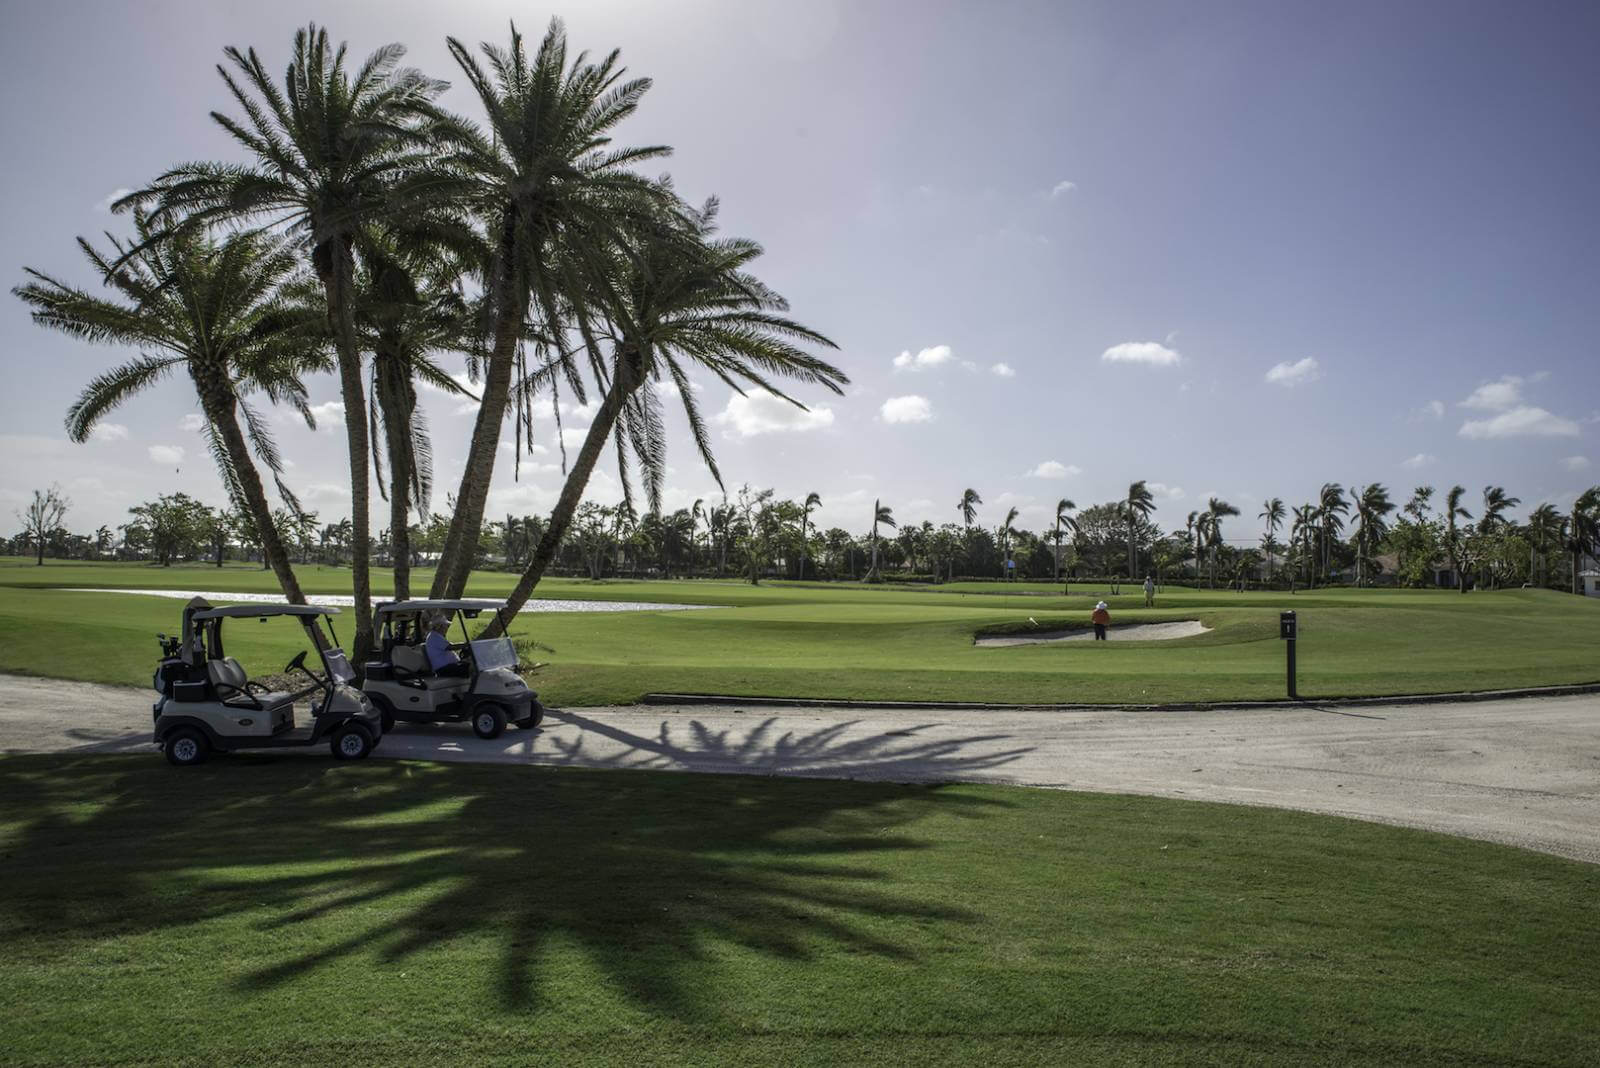 Naples has earned its title as the Golf Capital of the World with more golf holes per capita than anywhere else. Naples Beach Hotel & Golf Club. Photo by Jennifer Brinkman.